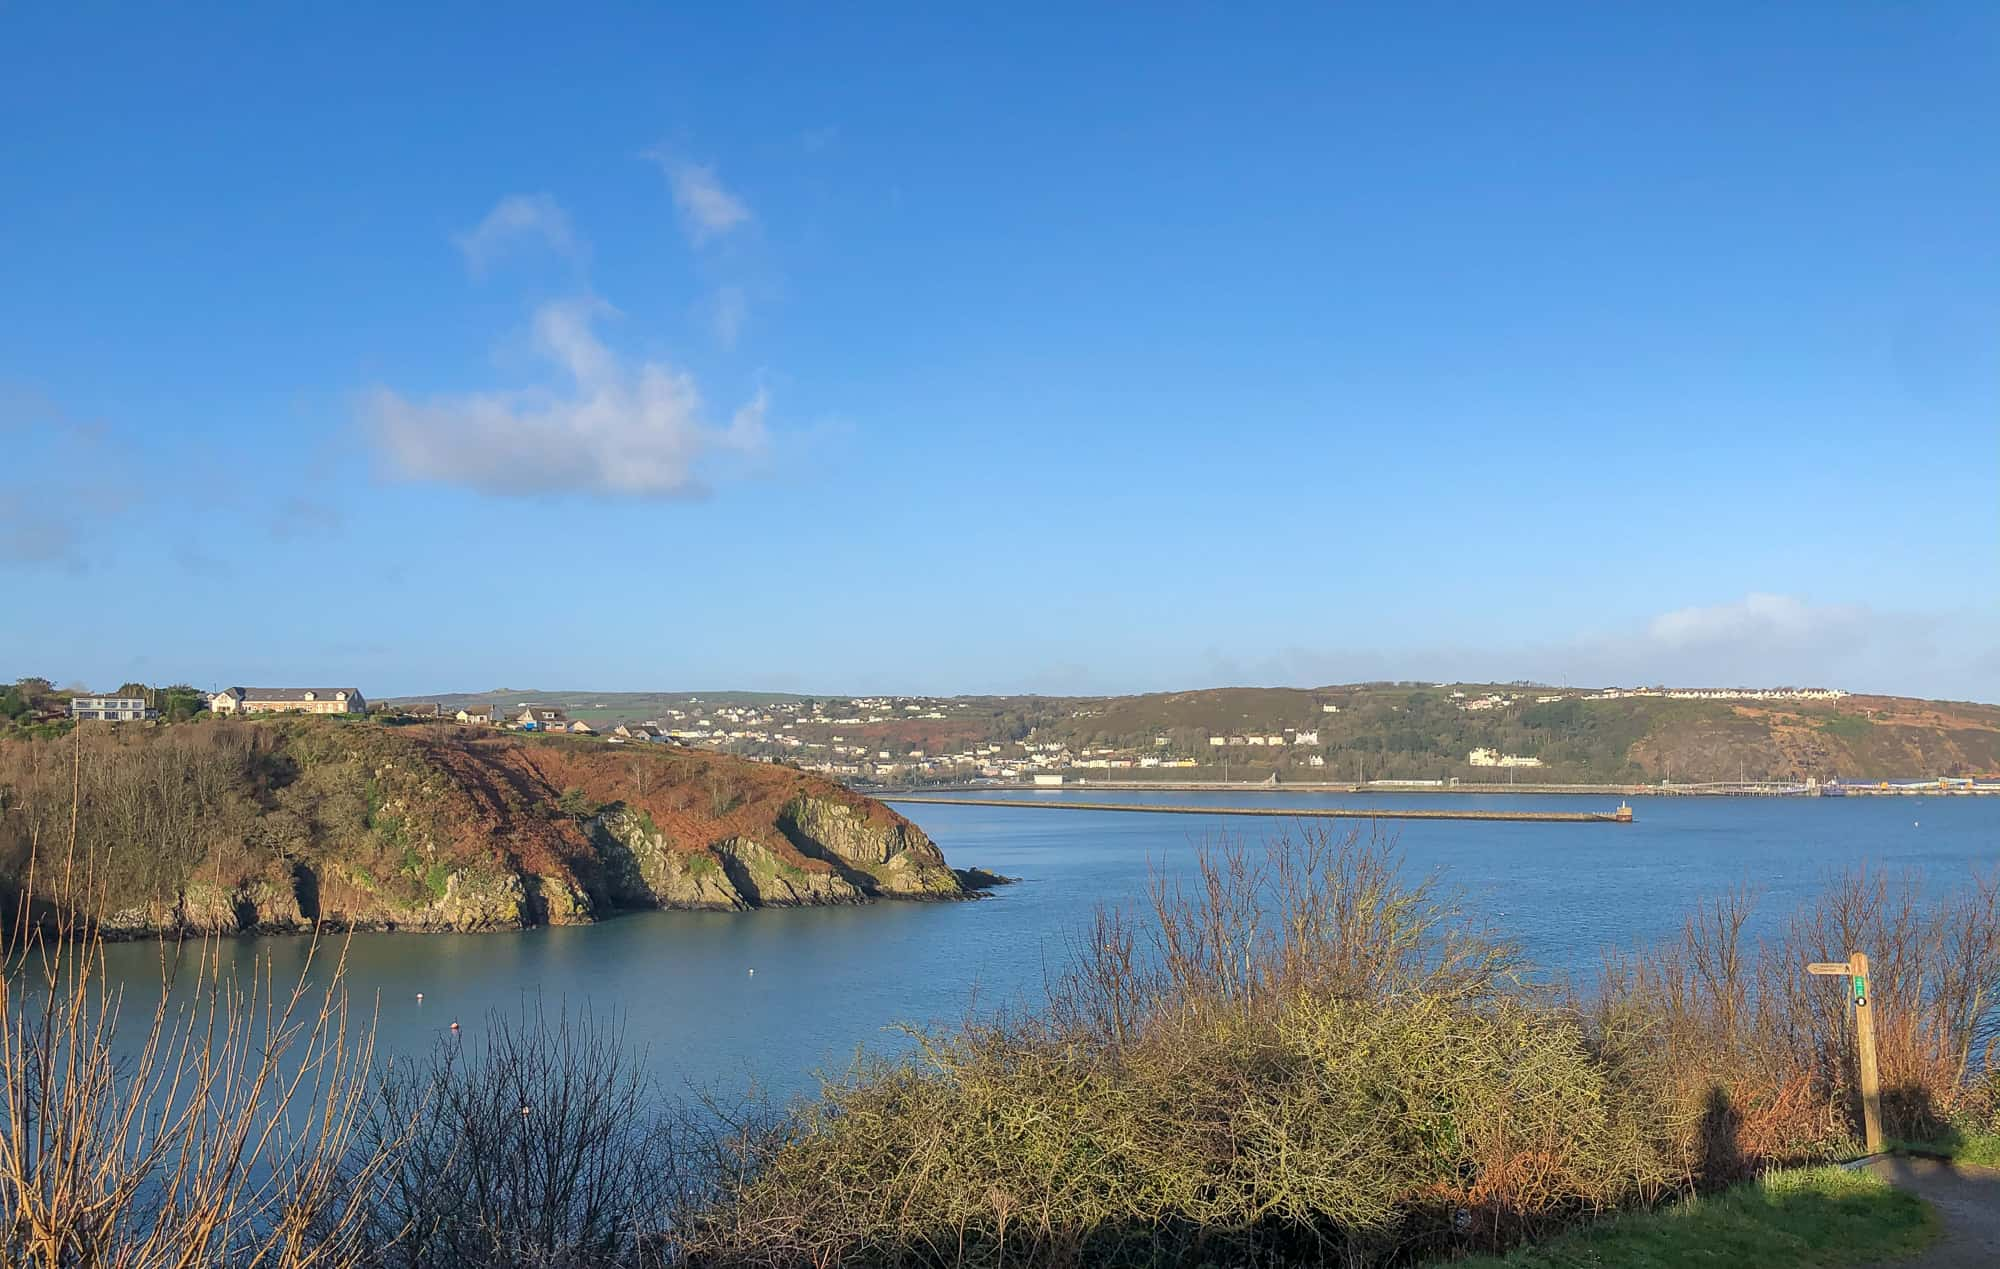 View over Fishguard Pembrokeshire Wales